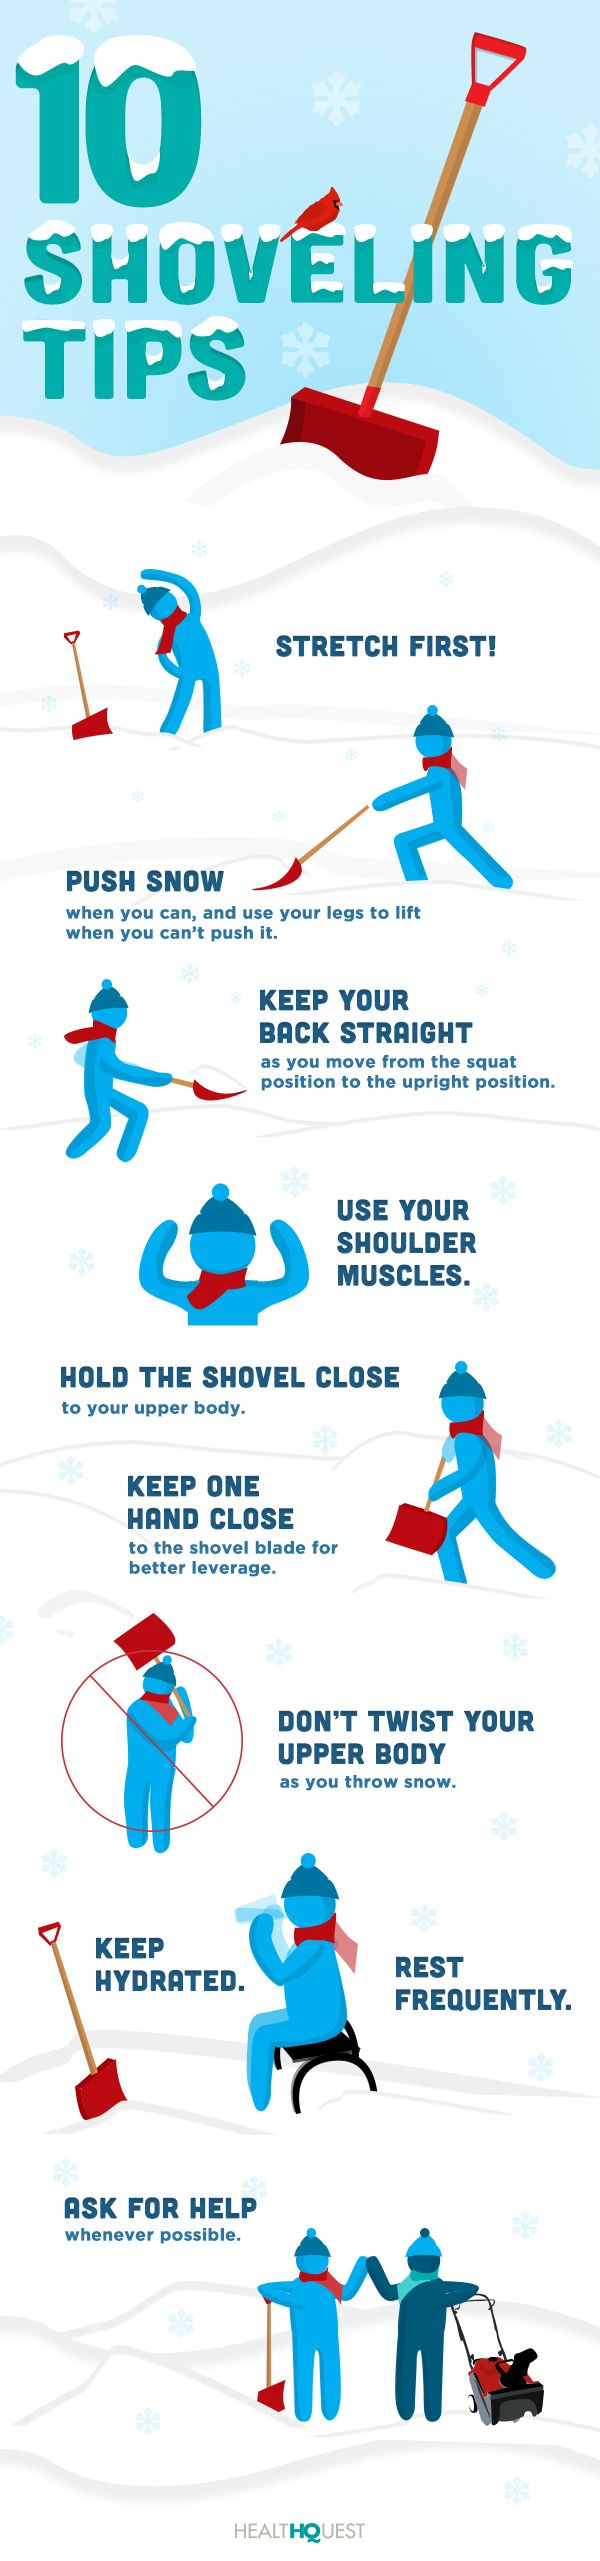 #Shoveling #tips to ensure less aches and pains  Loebig Chiropractic & Rehab www.loebigchiropractic.com